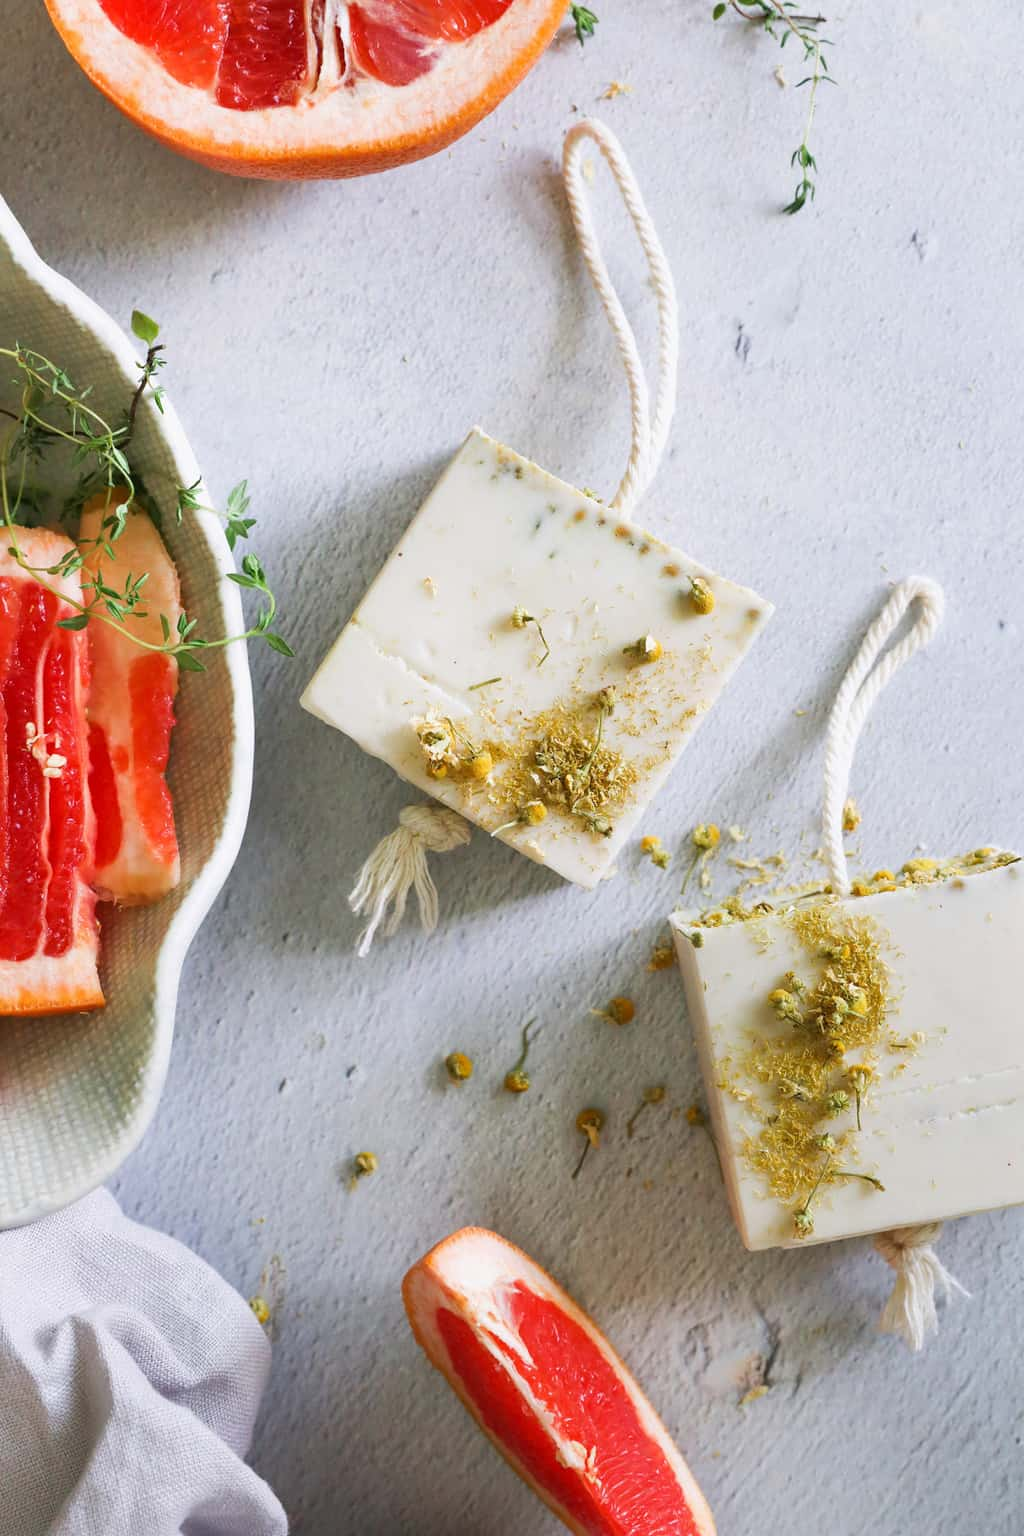 We'll show you how to make soap on a rope and share our recipe for nourishing thyme-grapefruit goat's milk soap. It makes a great gift!